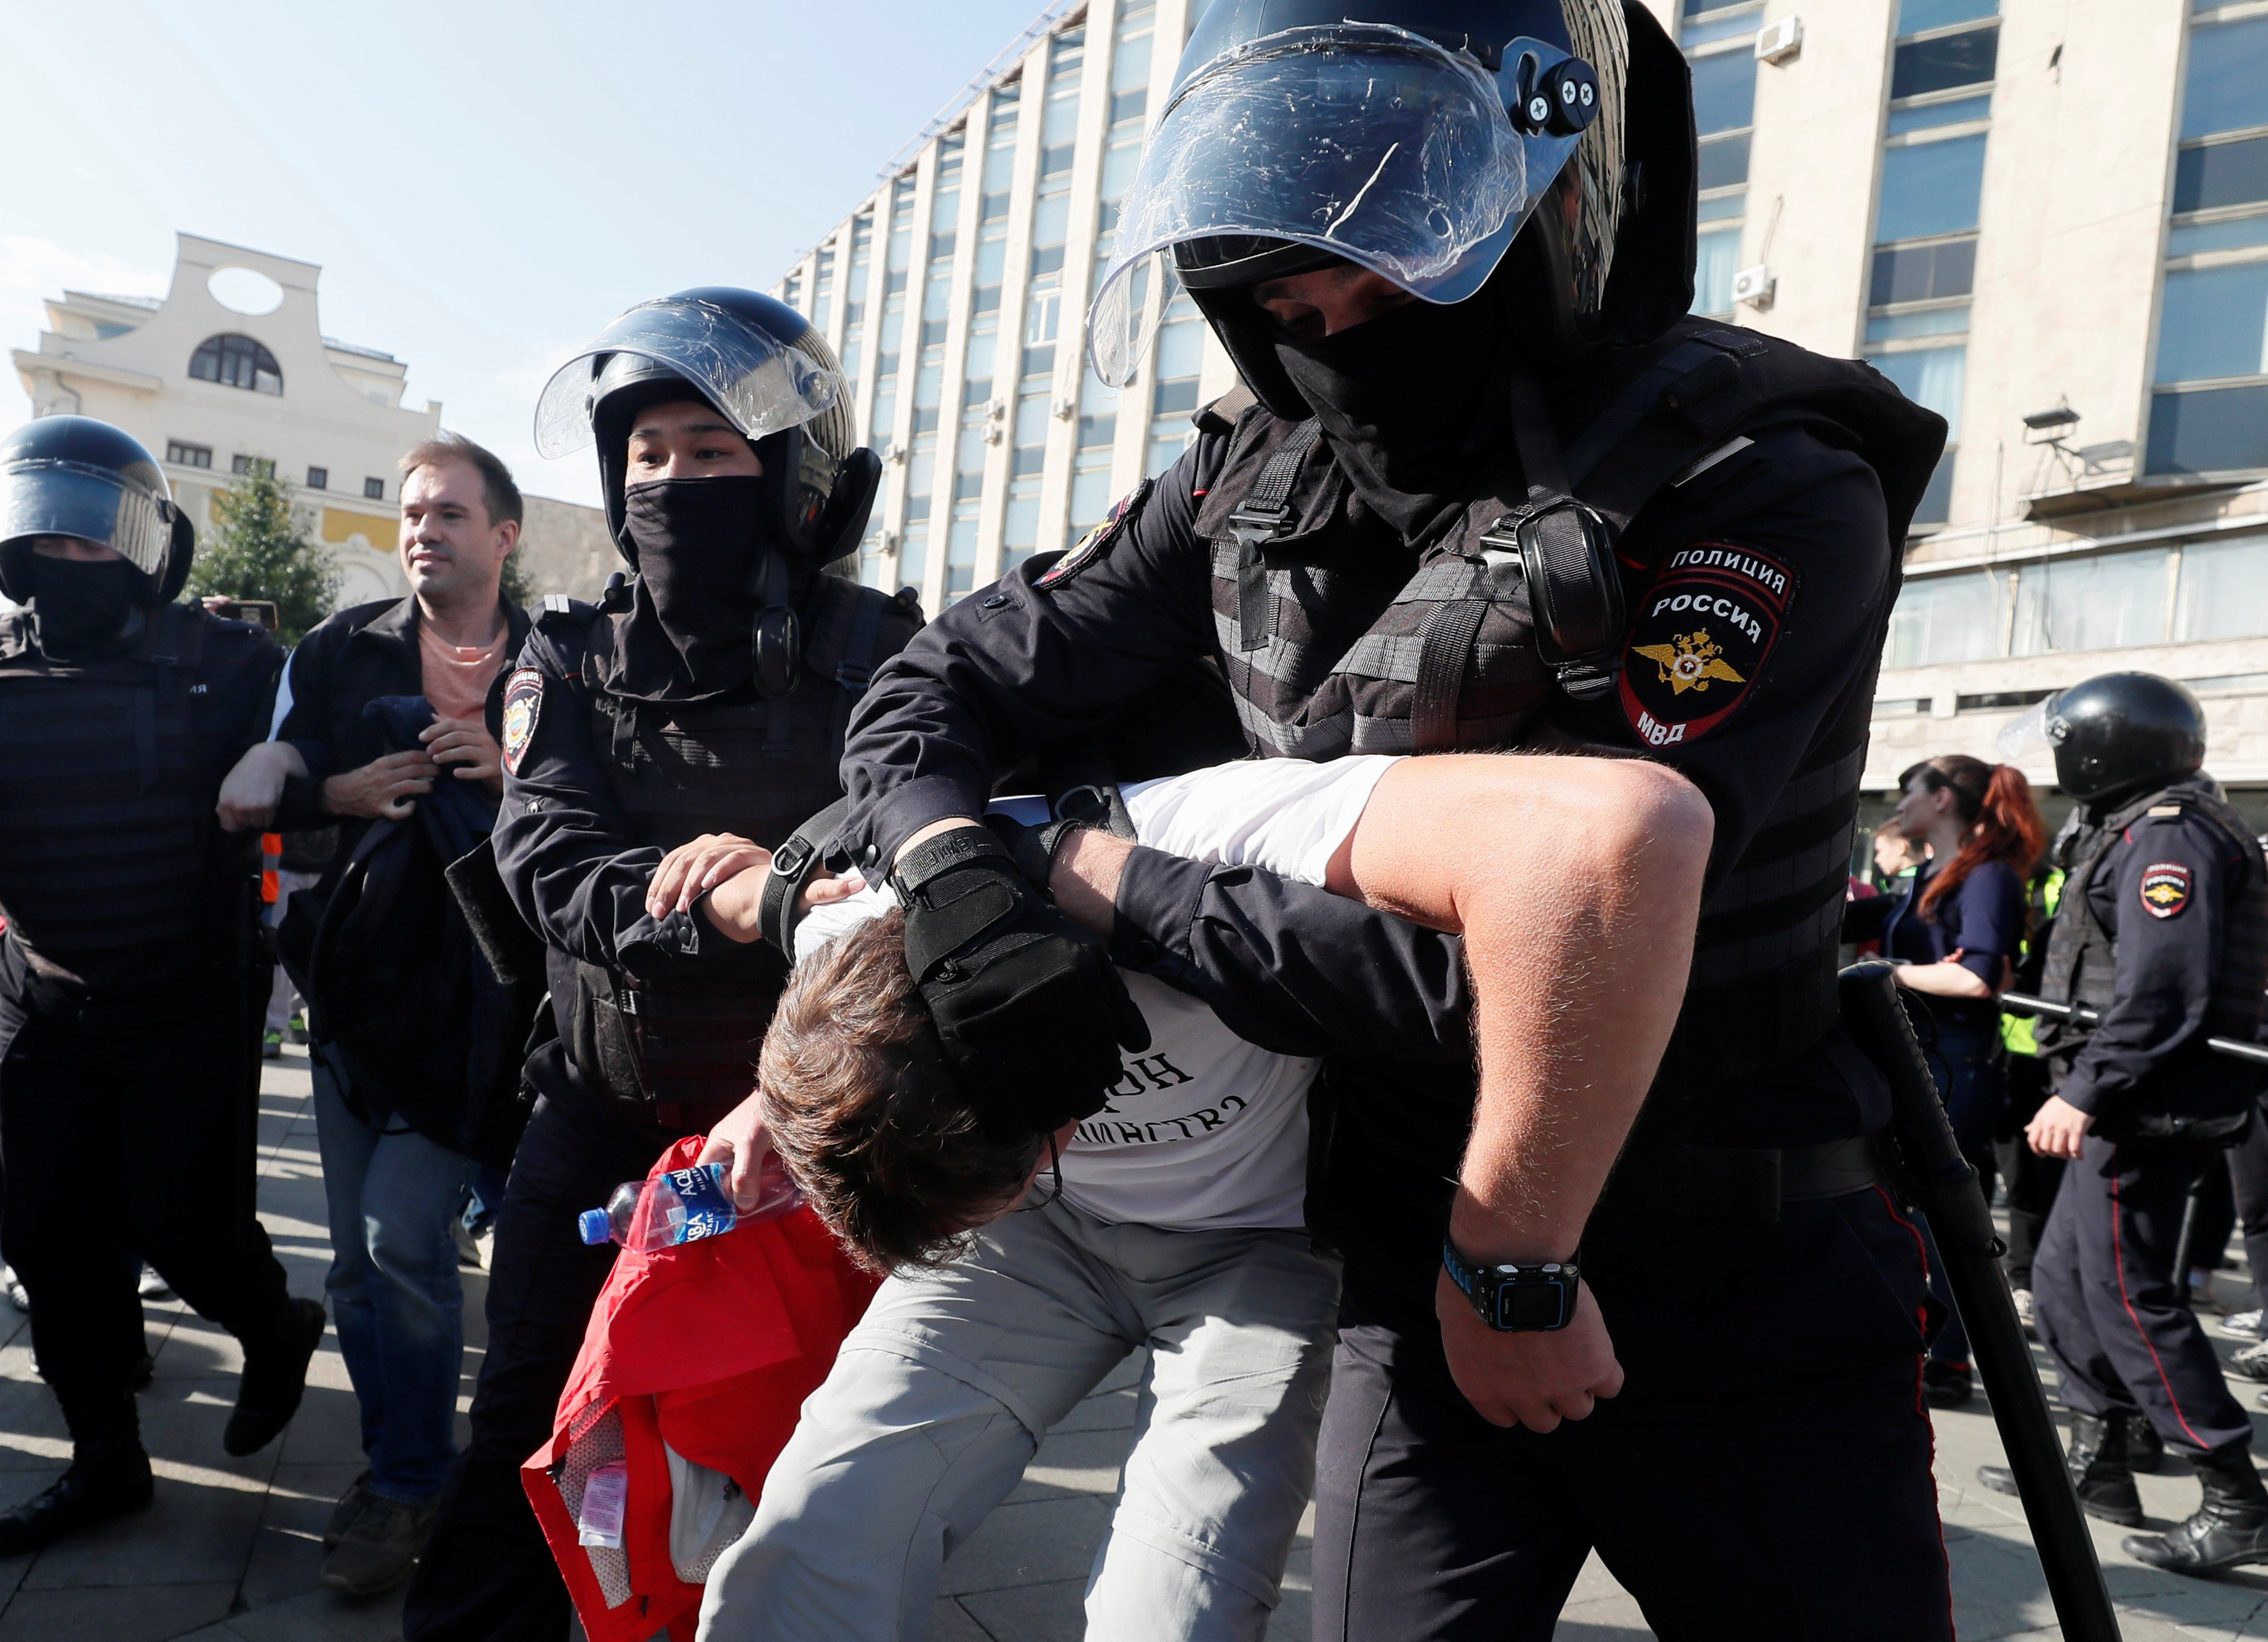 Law enforcement officers detain a participant in a rally calling for opposition candidates to be registered for elections to Moscow City Duma, the capital's regional parliament, in Moscow, Russia August 3, 2019. REUTERS/Shamil Zhumatov